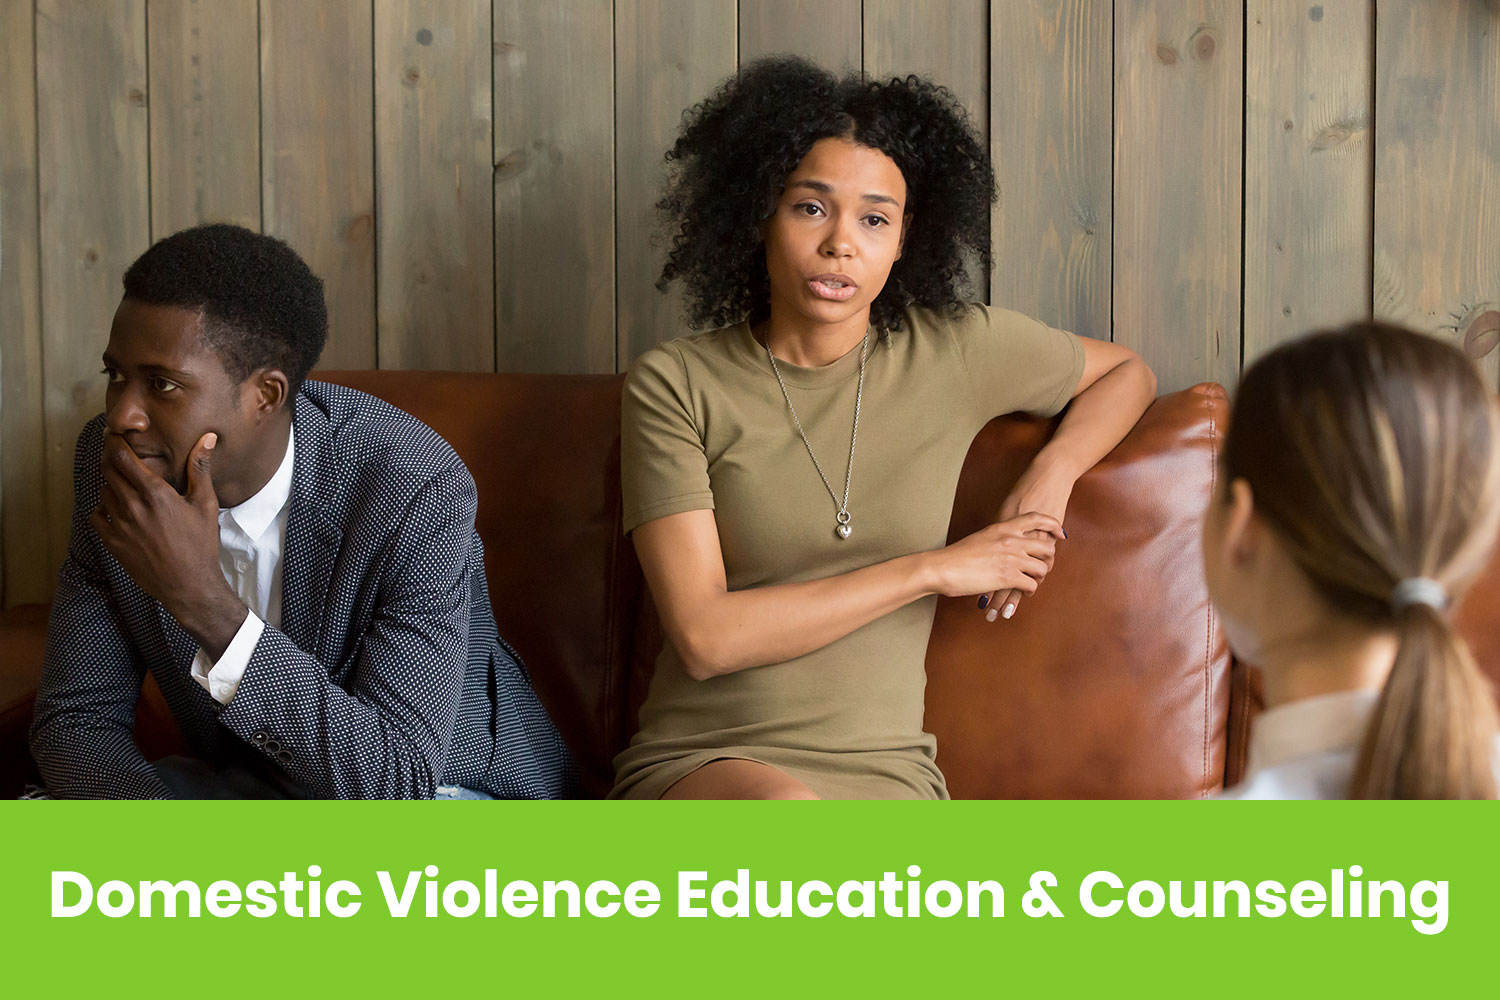 Domestic Violence Education and Counseling